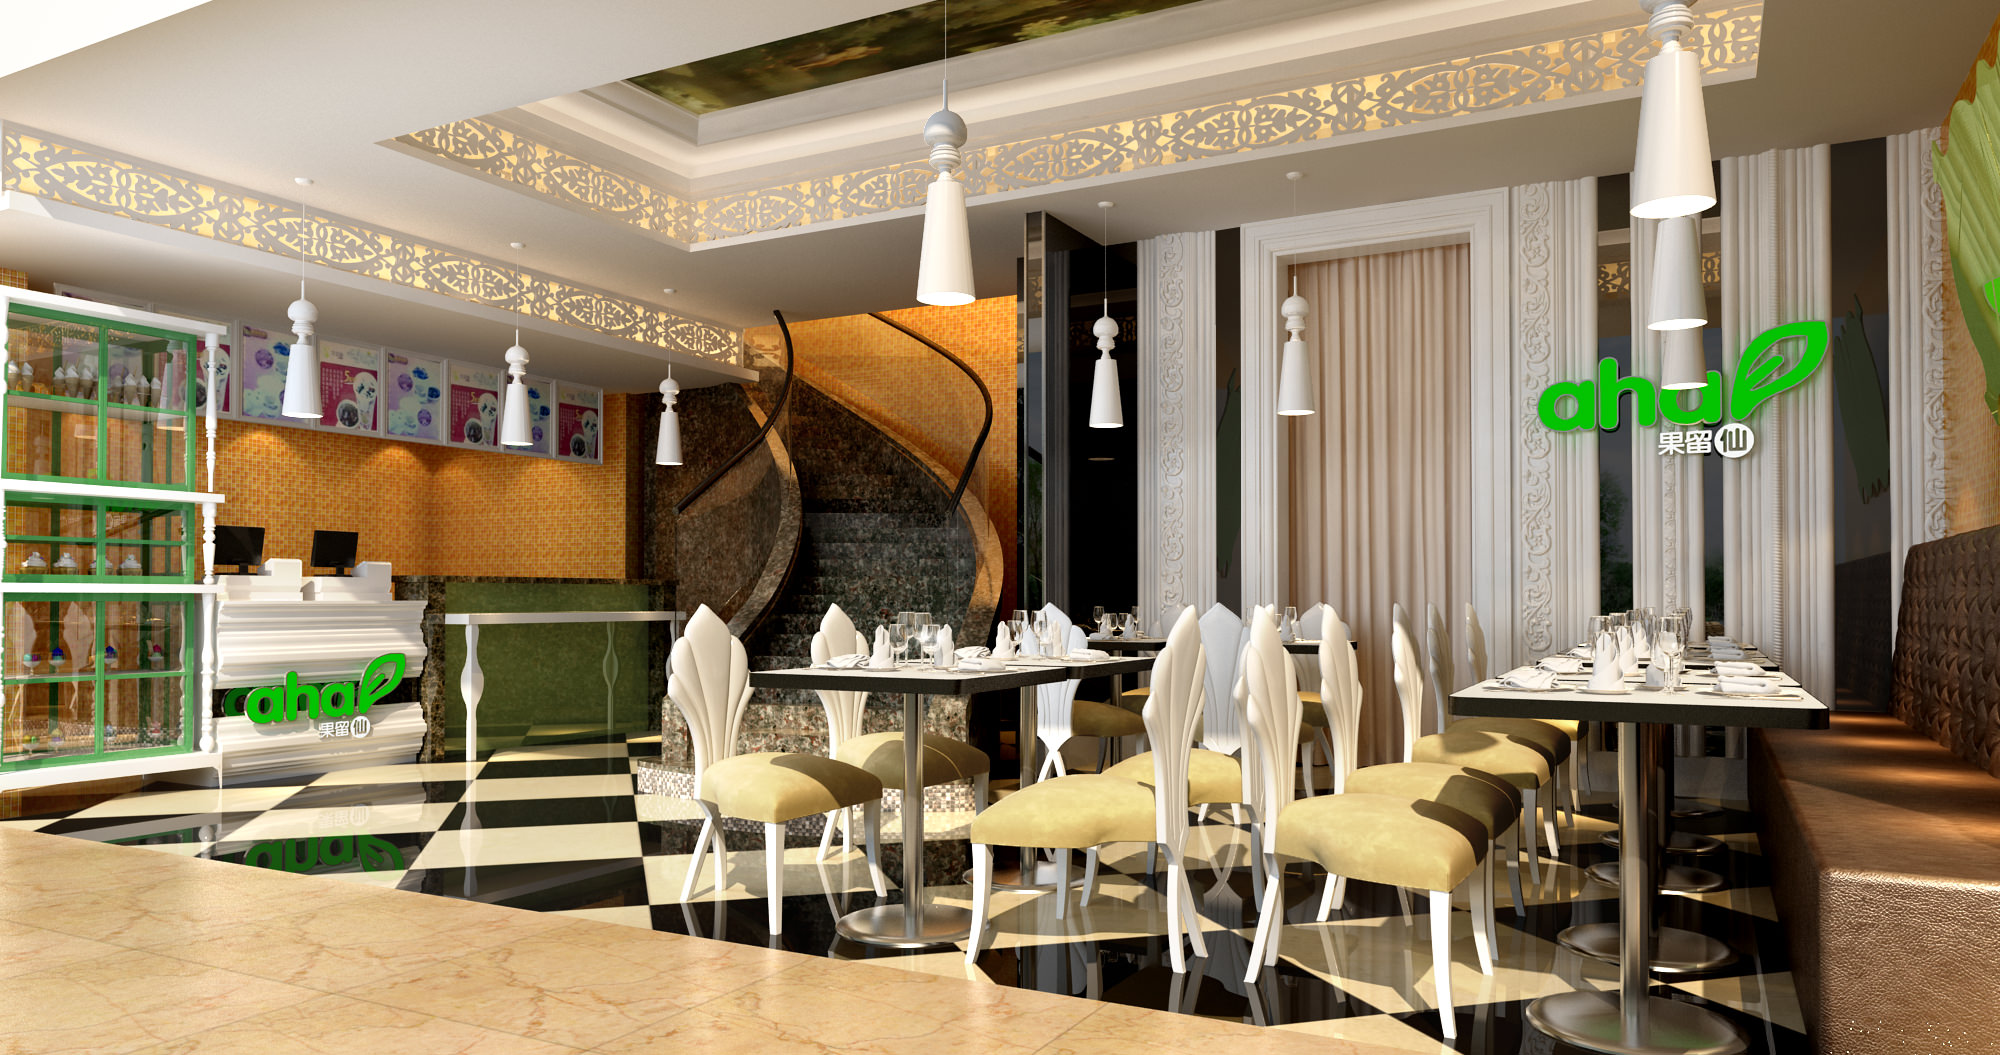 Ritzy restaurant interior with chequered f 3d model max for Food bar 3d model